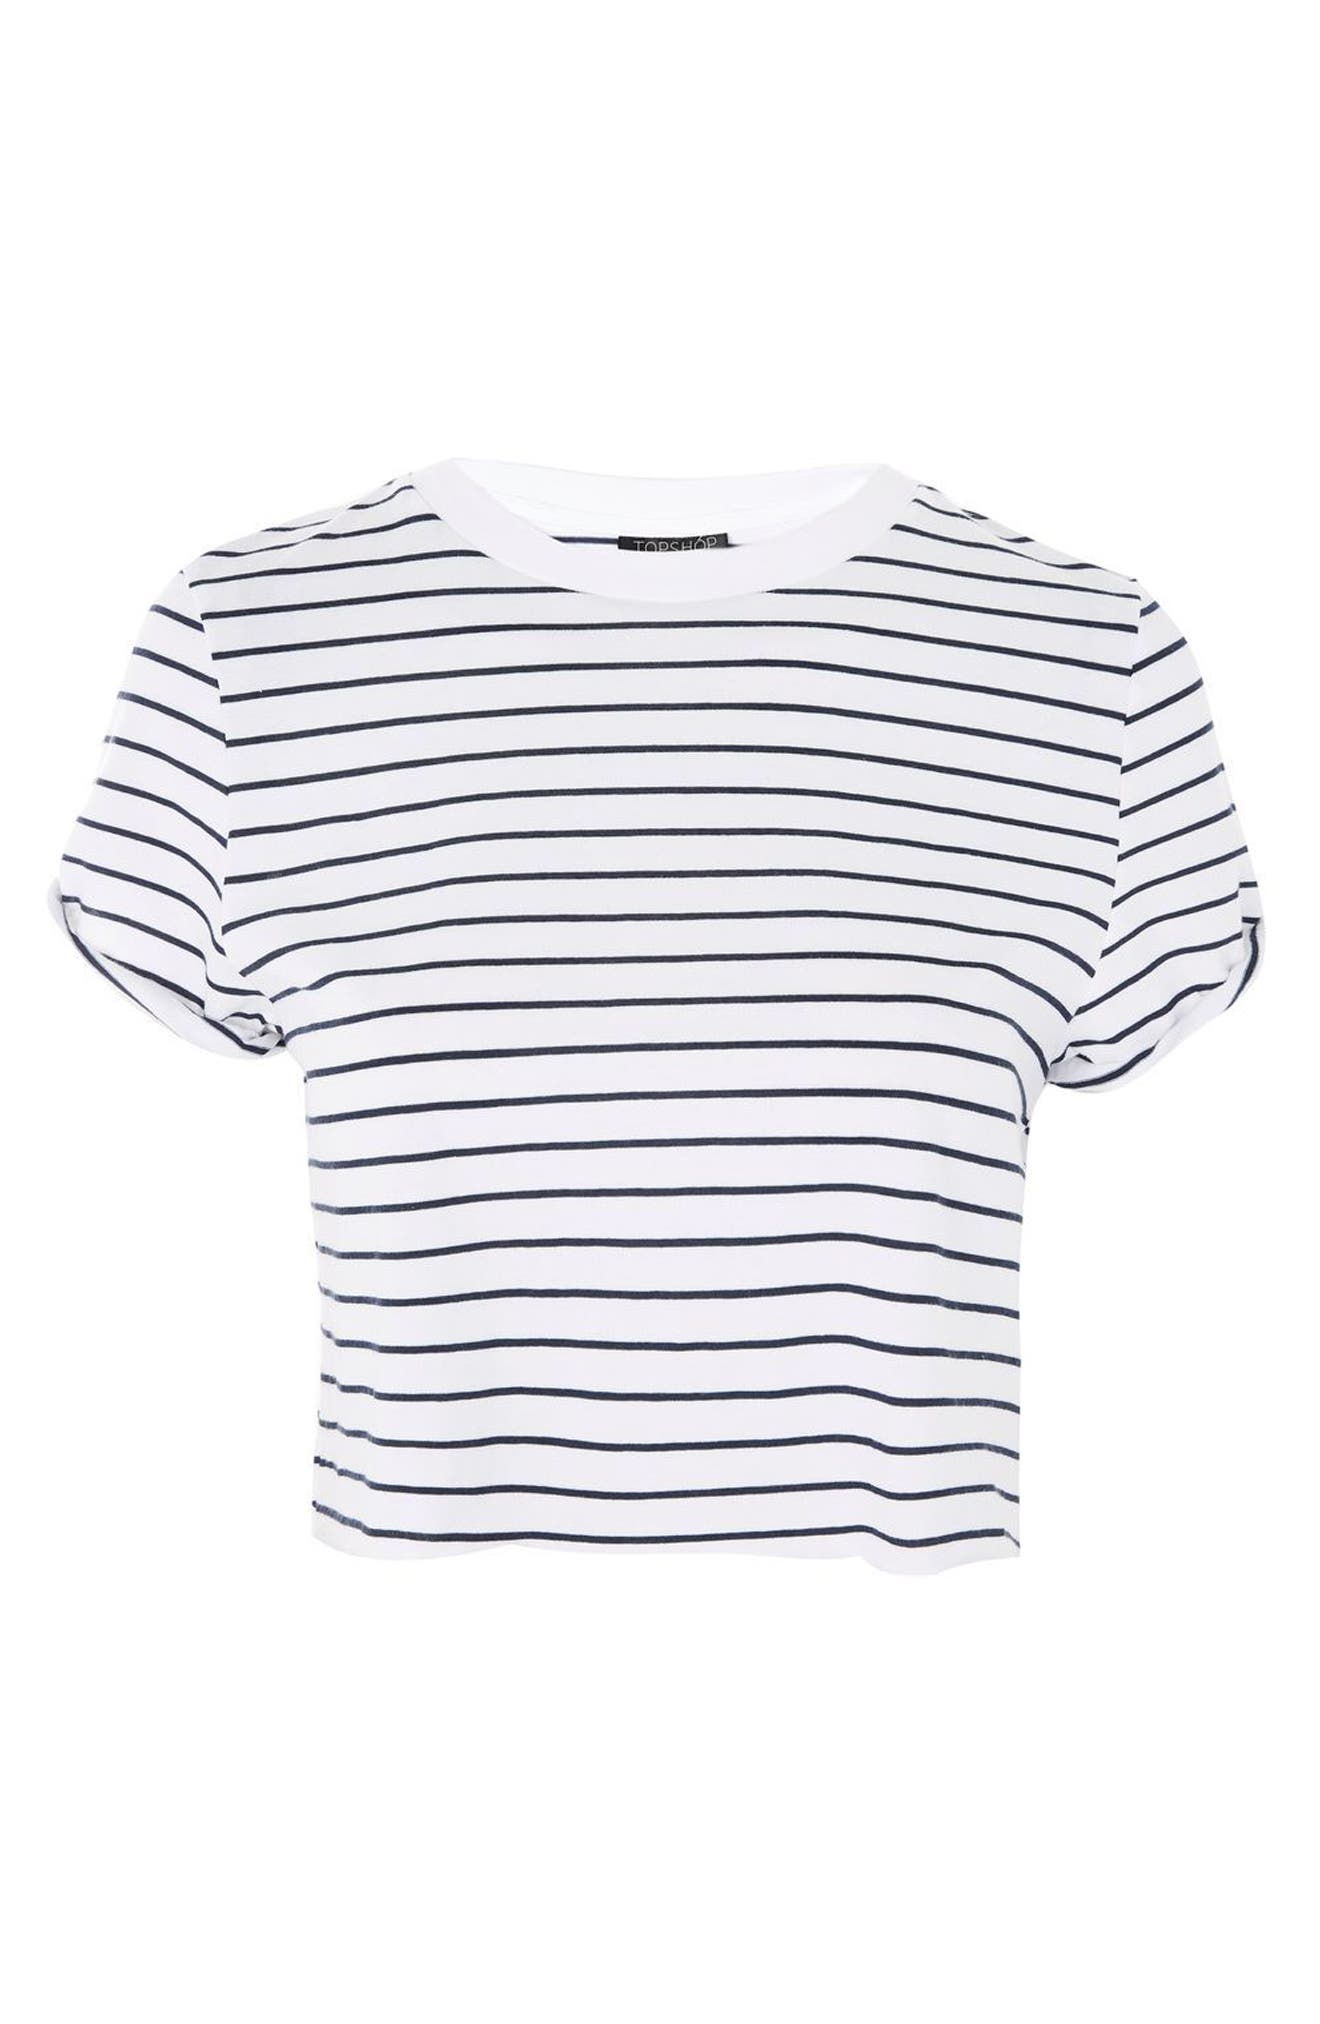 Crop Stripe Tee,                             Alternate thumbnail 8, color,                             Navy Blue Multi